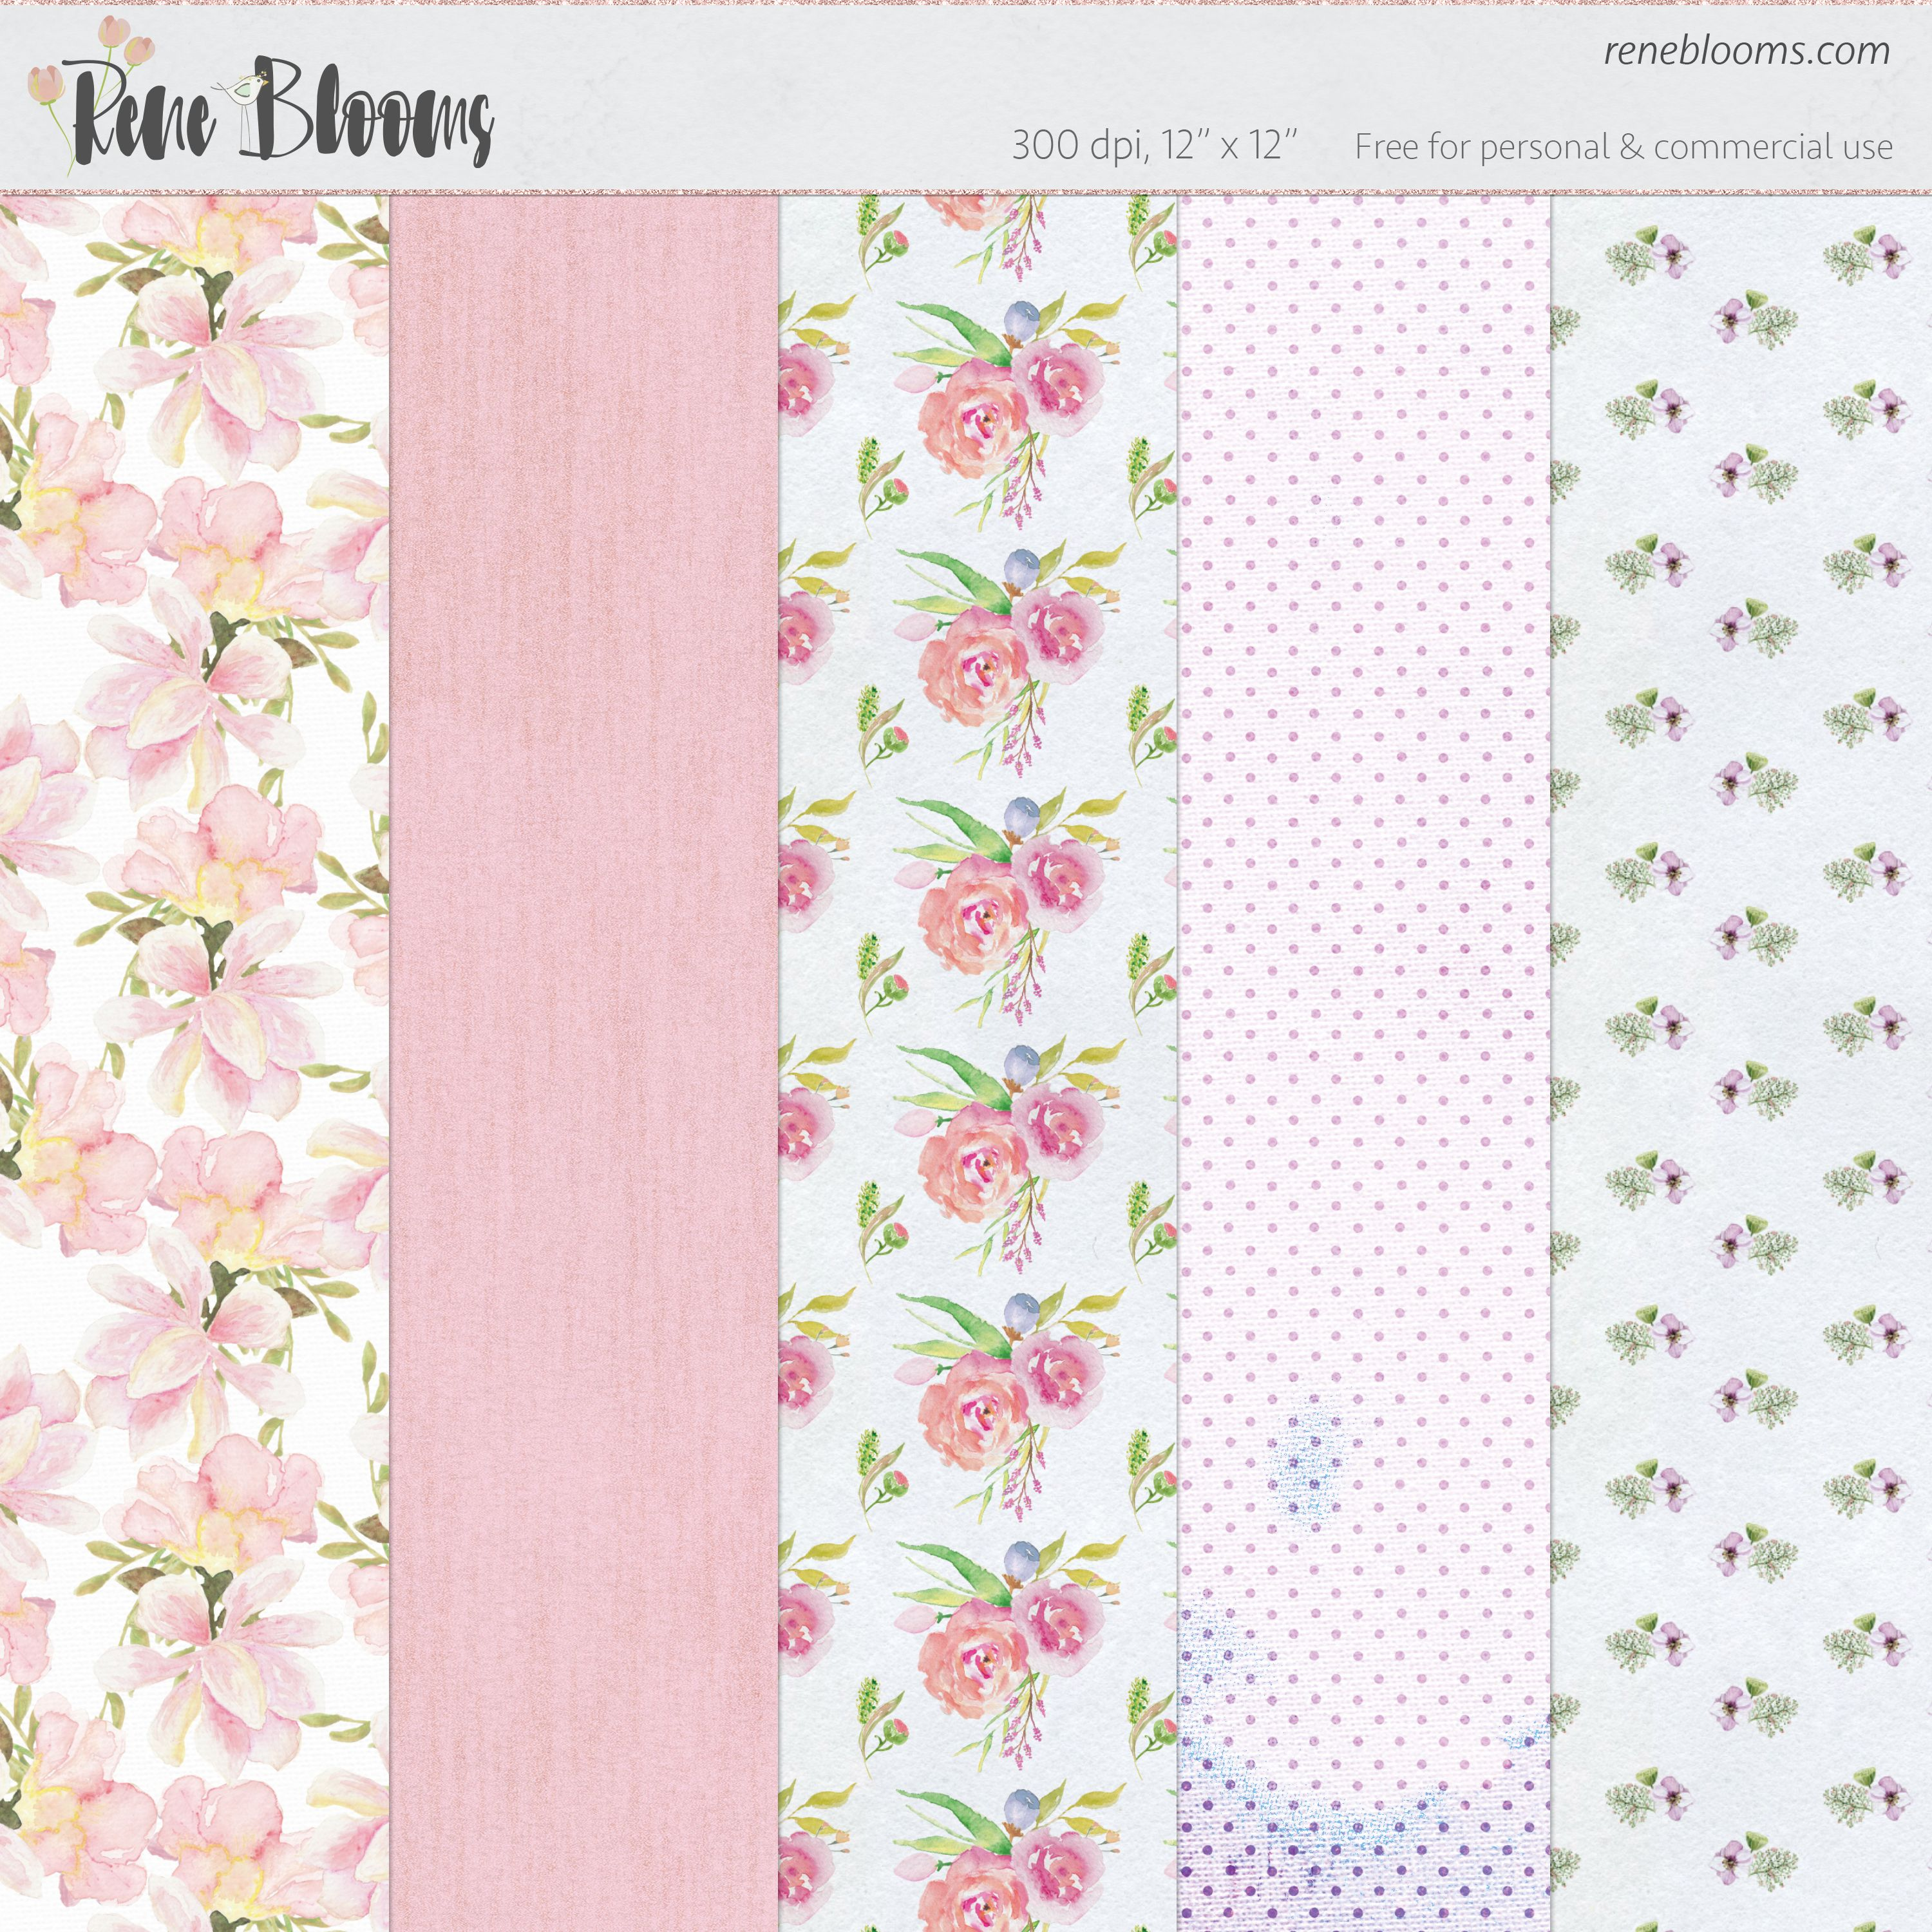 Download Amazing Digital Scrapbook Papers From Reneblooms Online For Free Hassle Downloads